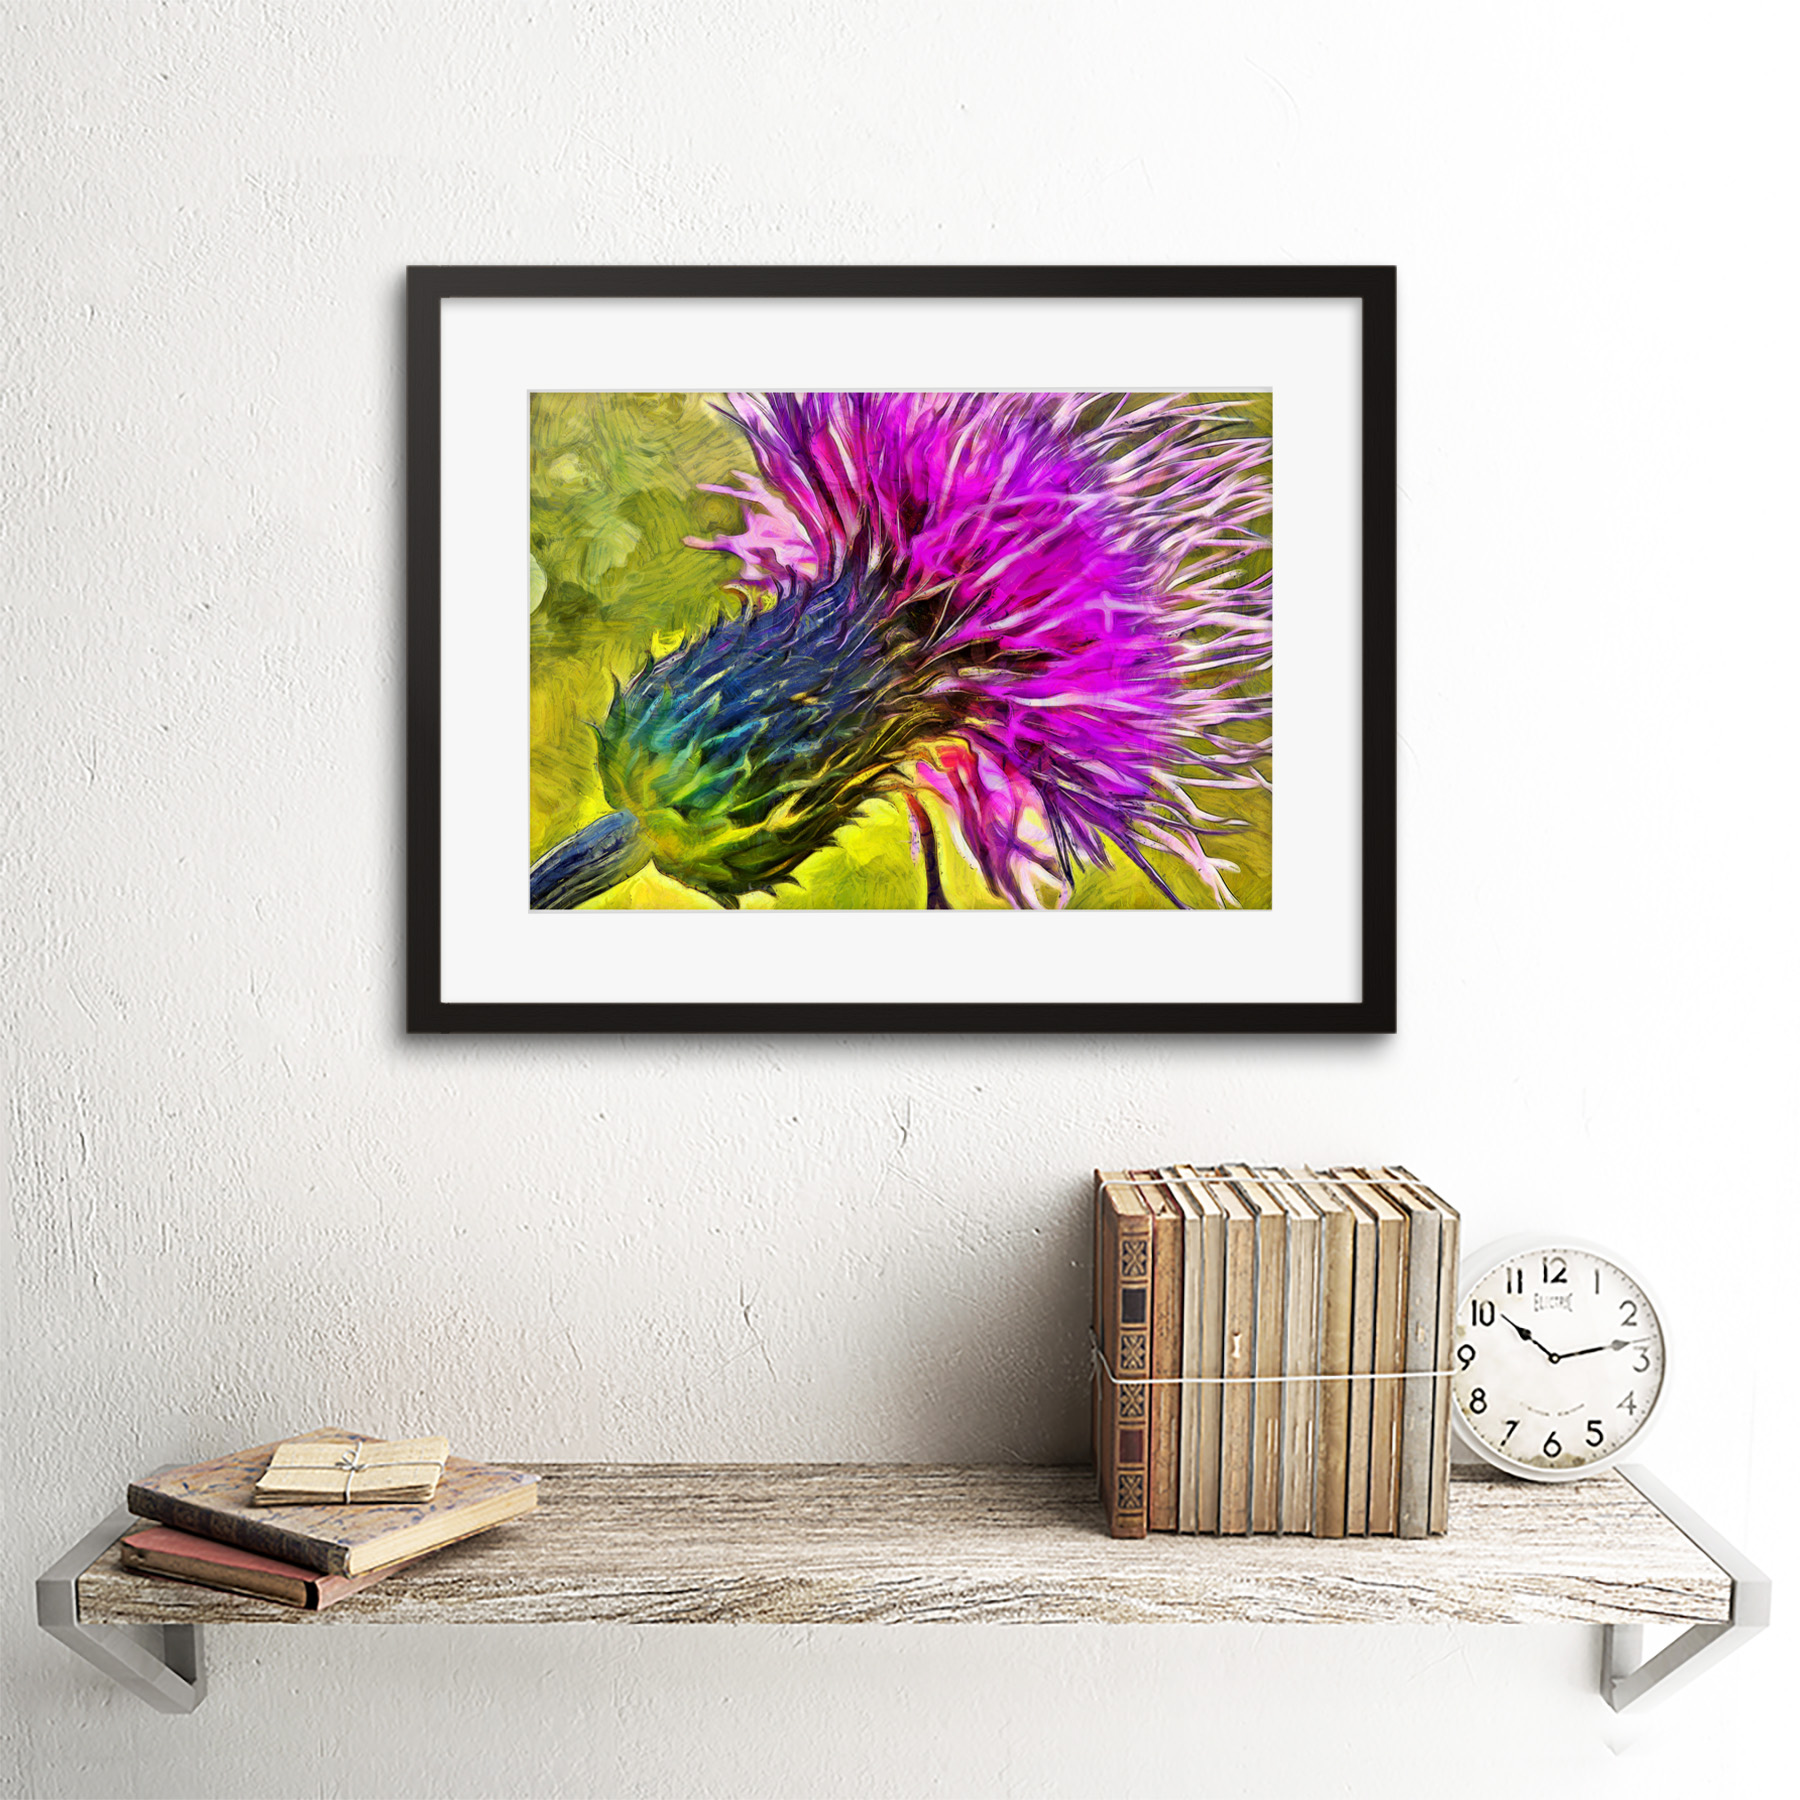 Scottish Thistle Flower Vibrant 12X16 Inch Framed Art Print